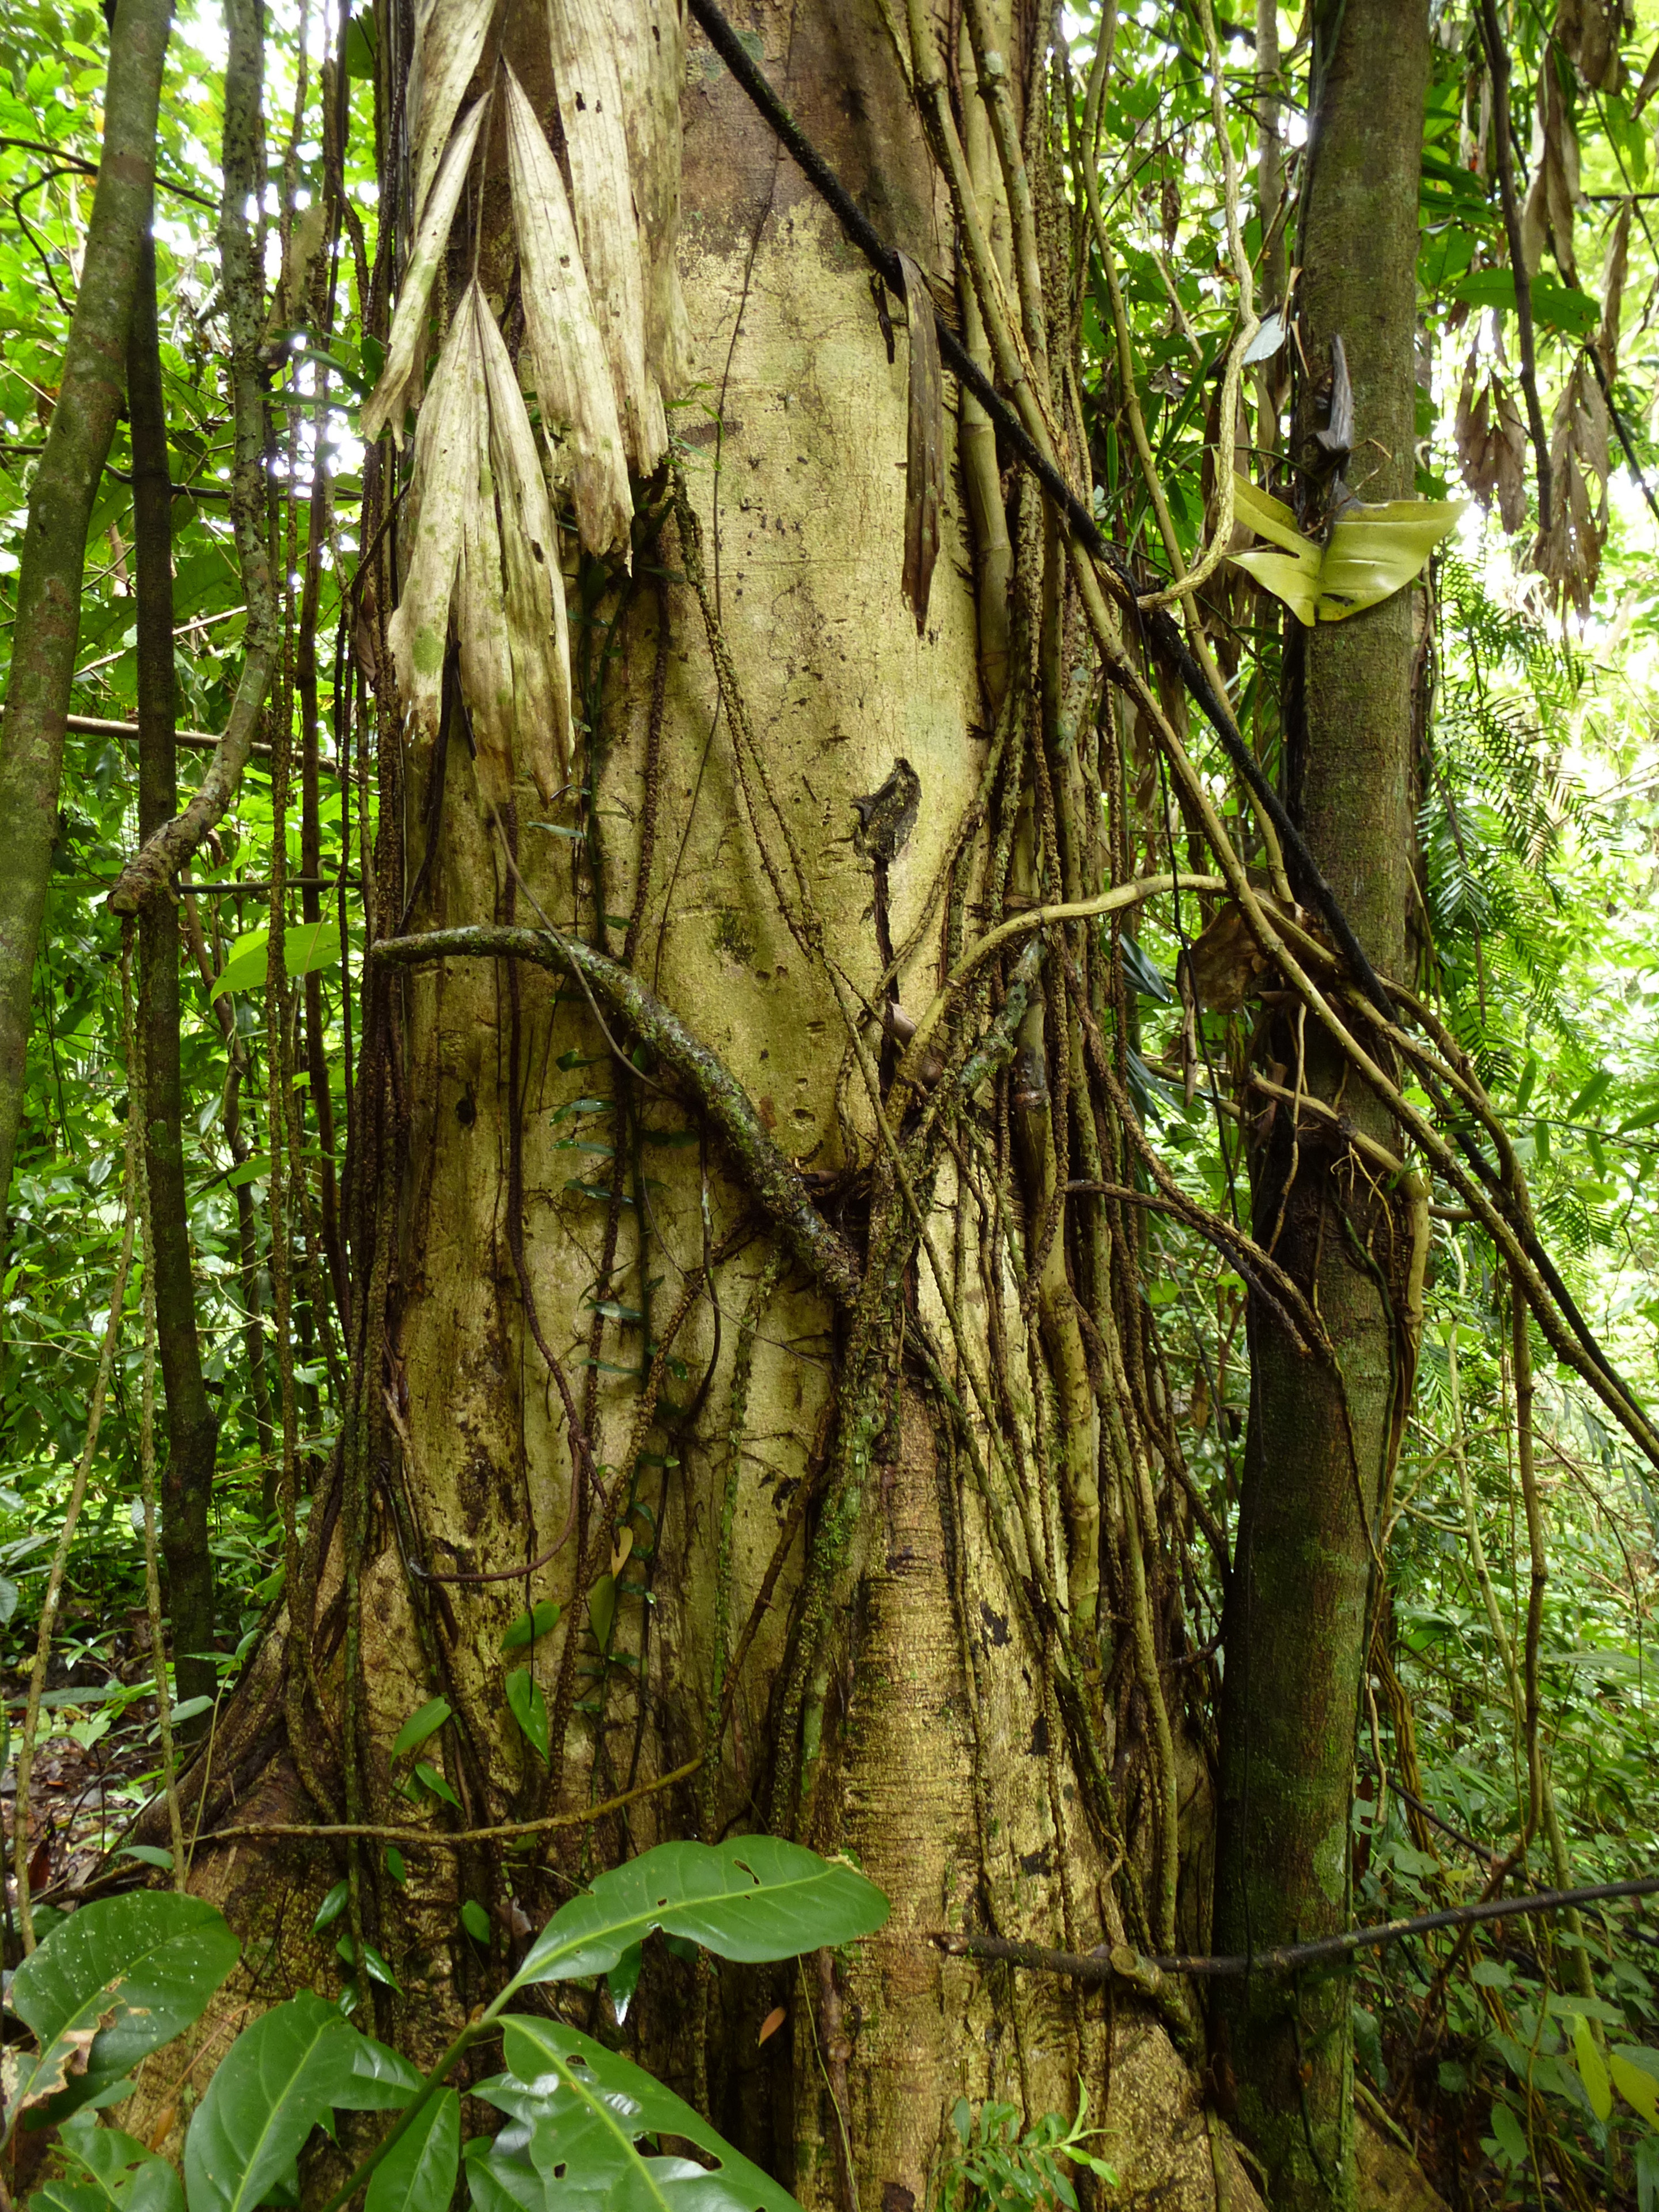 Close Up of Fig Tree Trunk Covered with Aerial Roots or Vines in Lush Forest